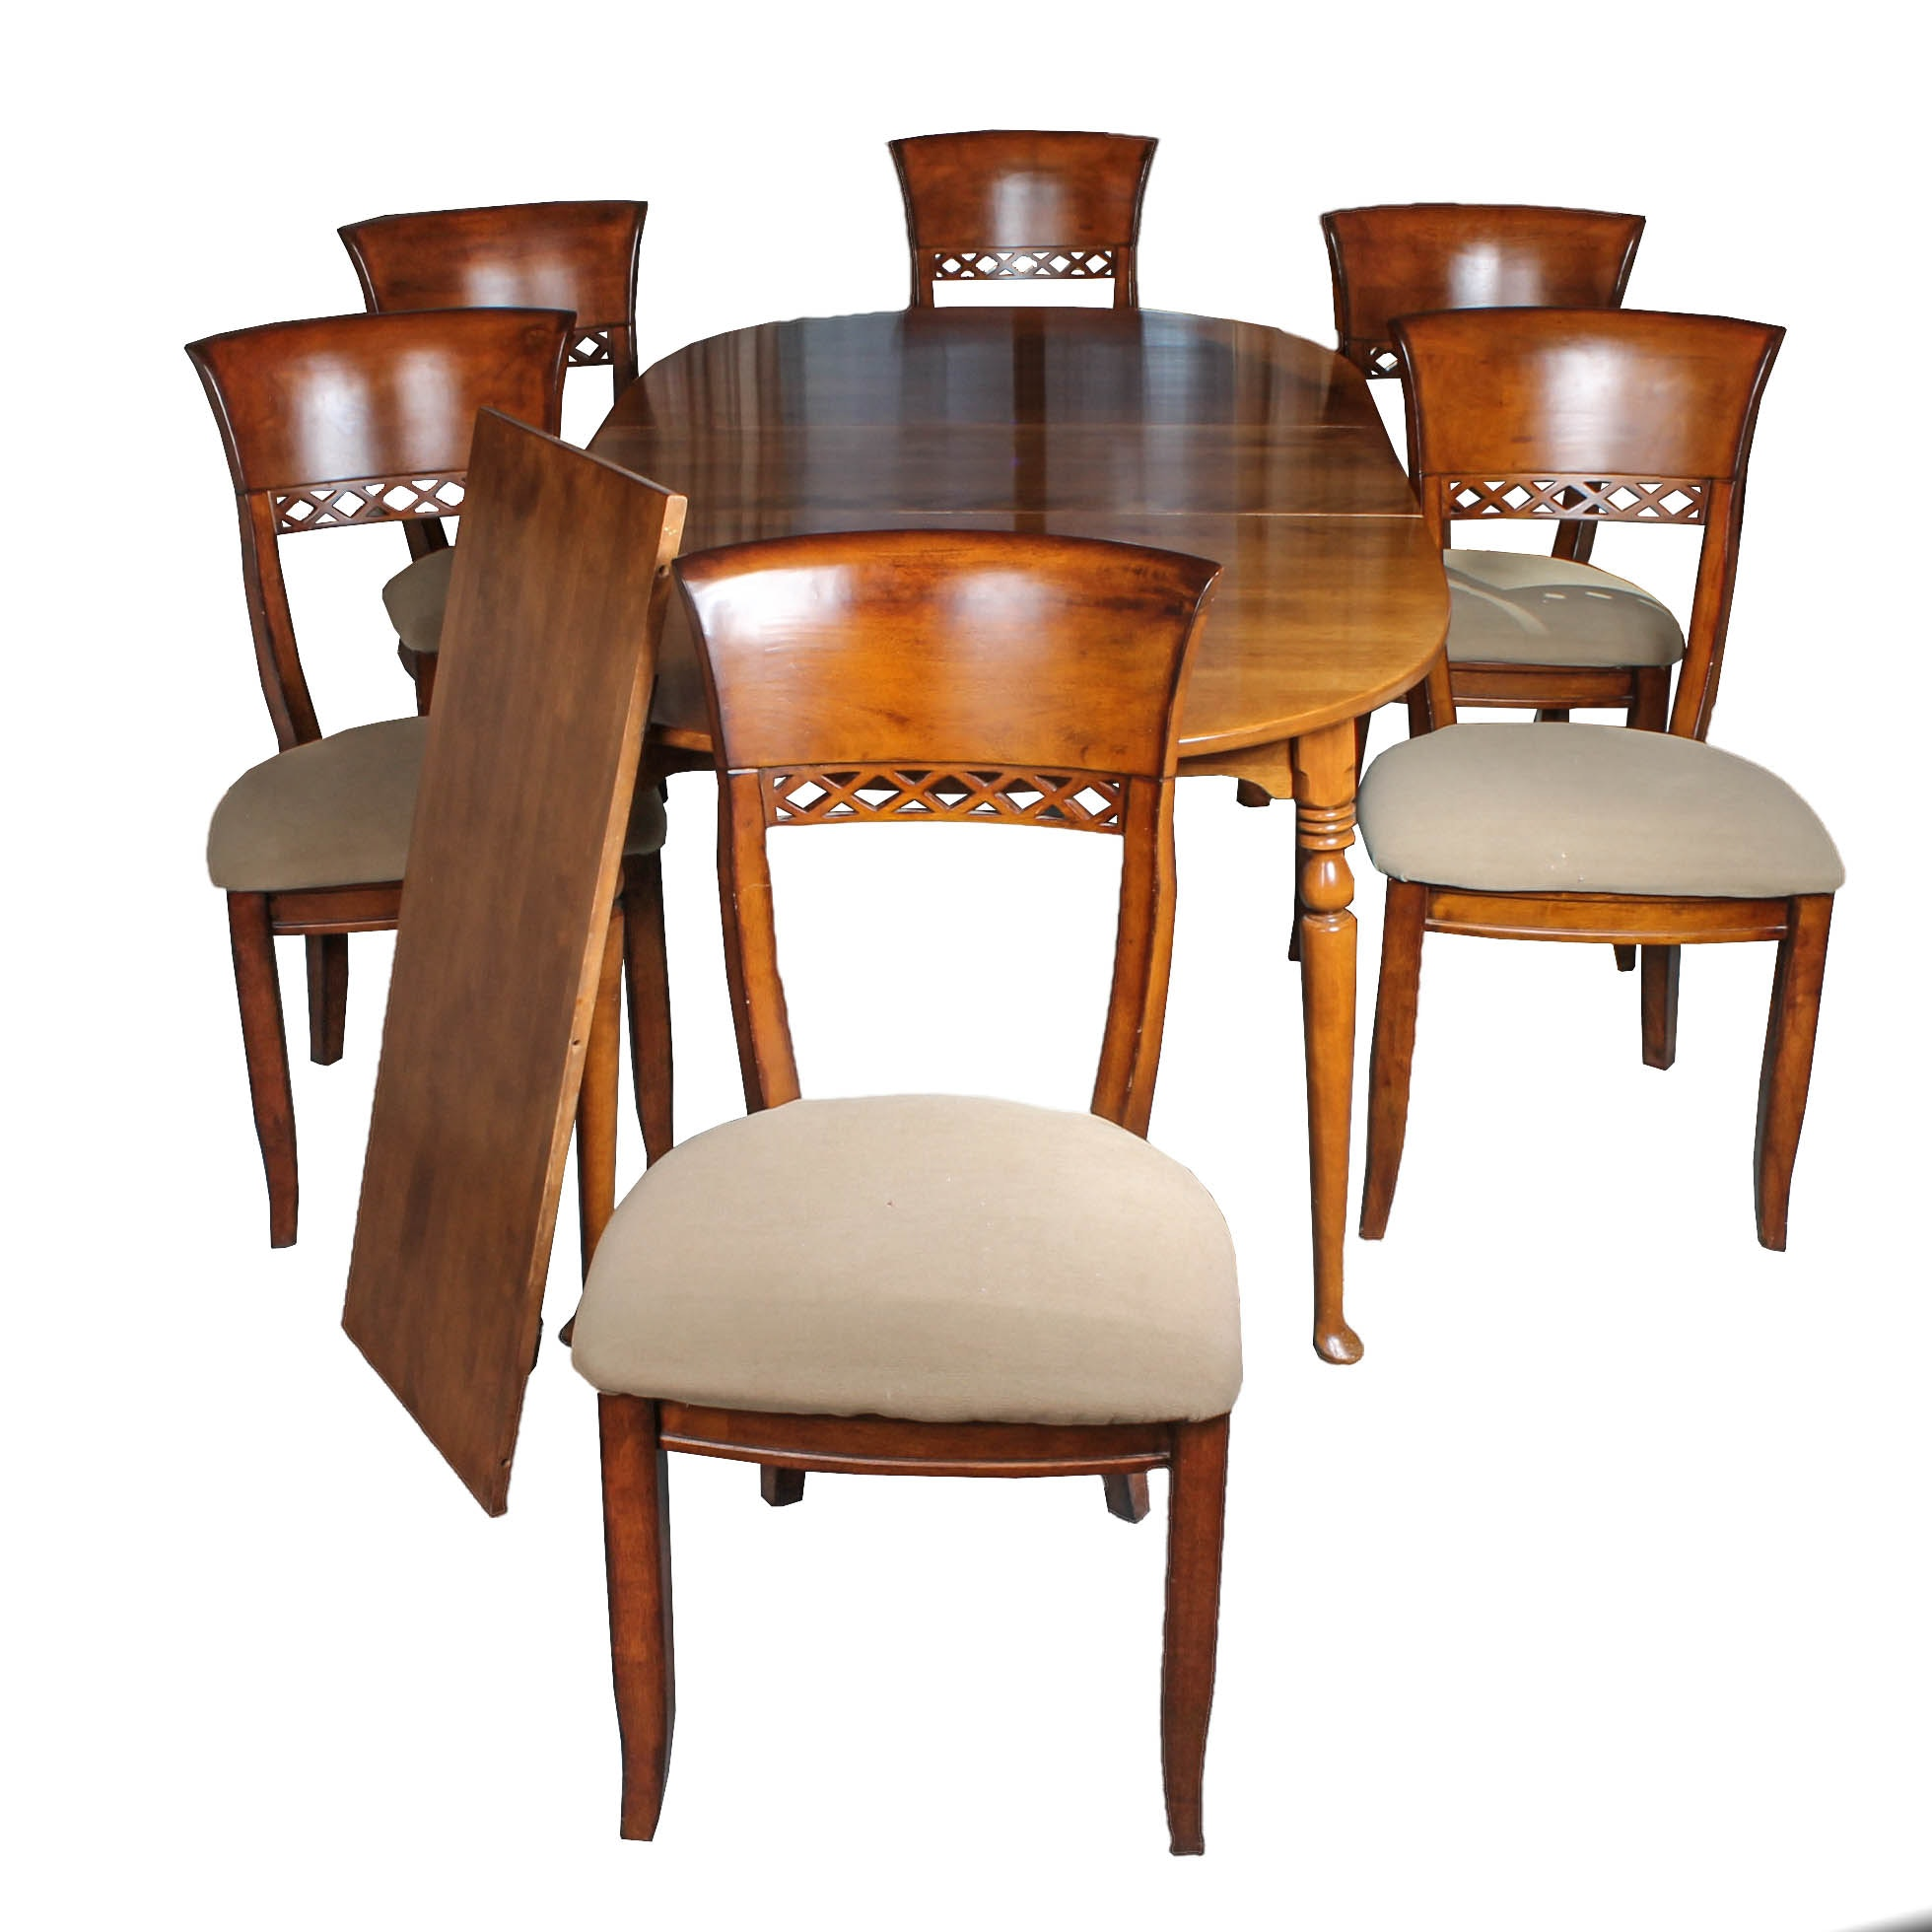 Maple Kitchen Table With Chair And Bench Ebth: Traditional Maple Dining Table And Six Chairs By Ethan